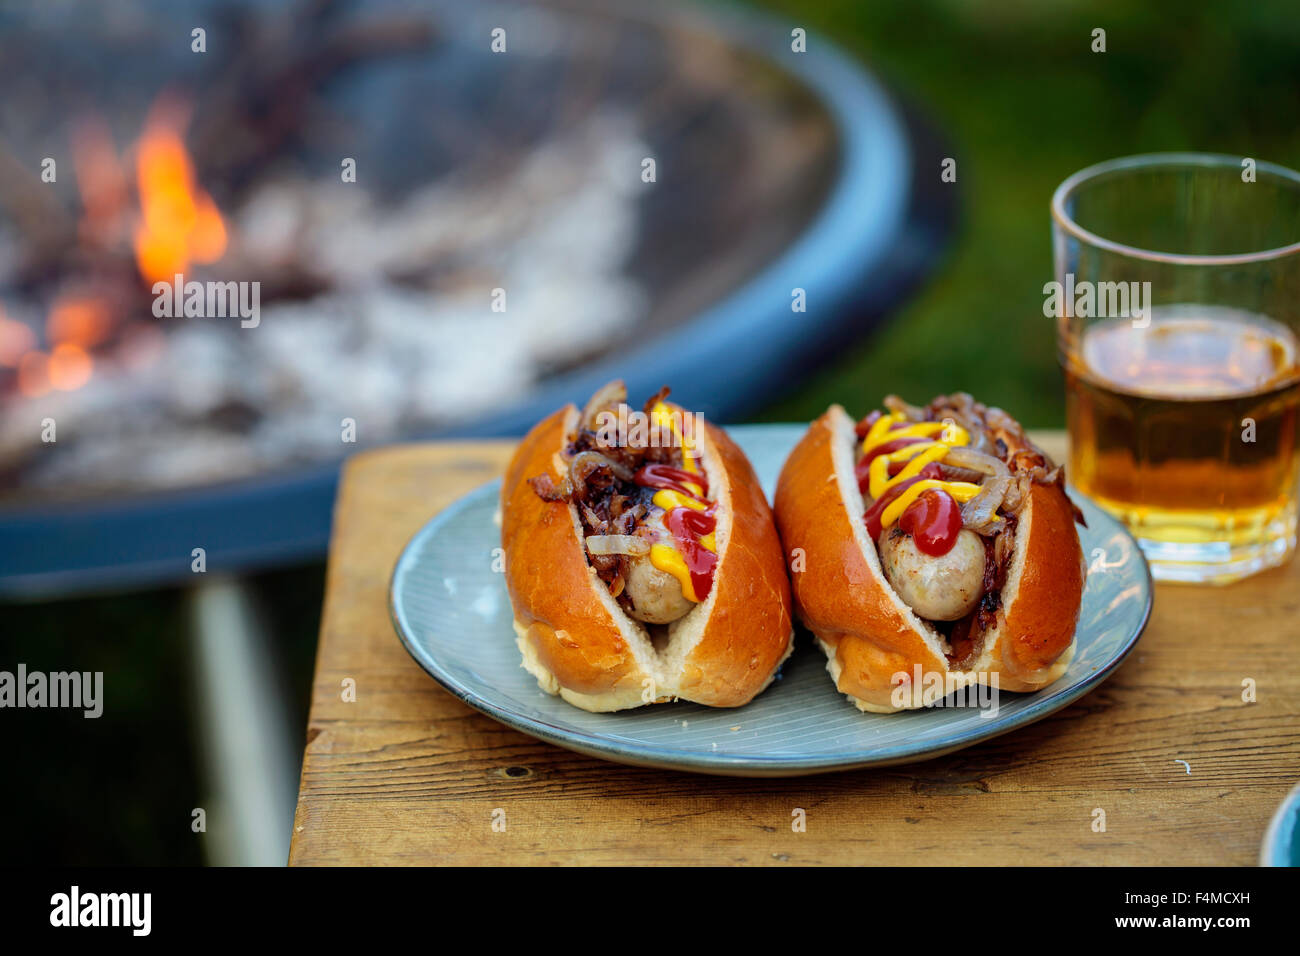 Hot dogs with fried onions - Stock Image